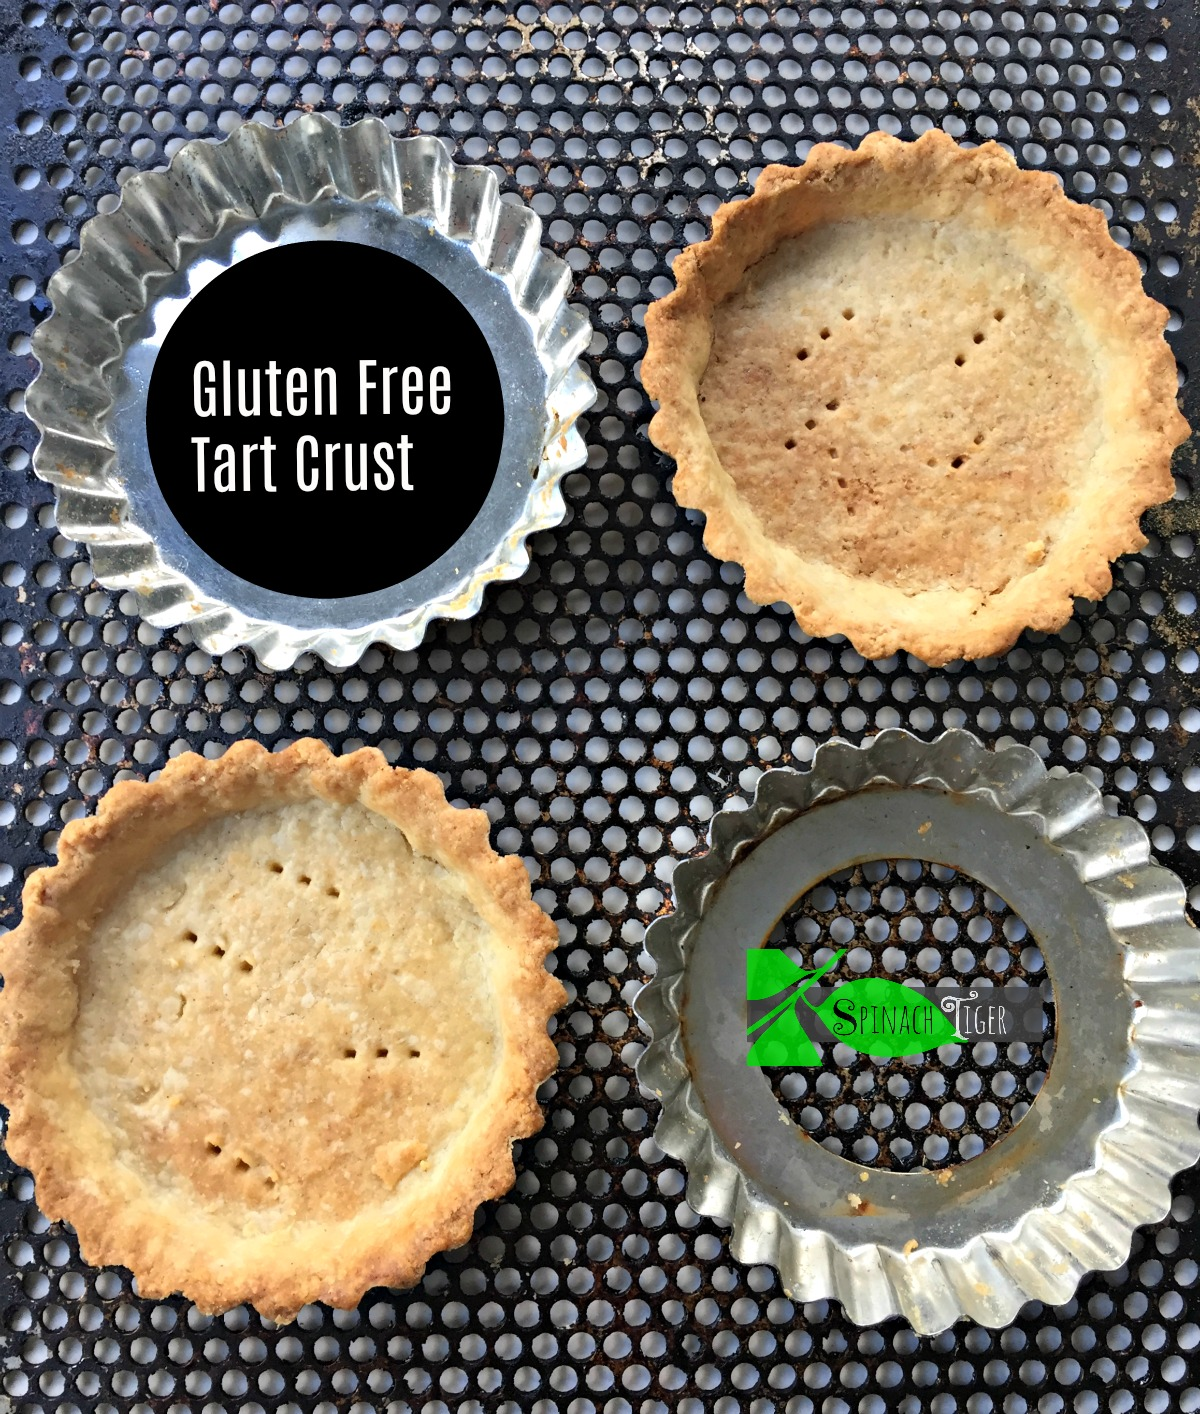 America's Test Kitchen Gluten Free Tart Crust Recipe from Spinach Tiger